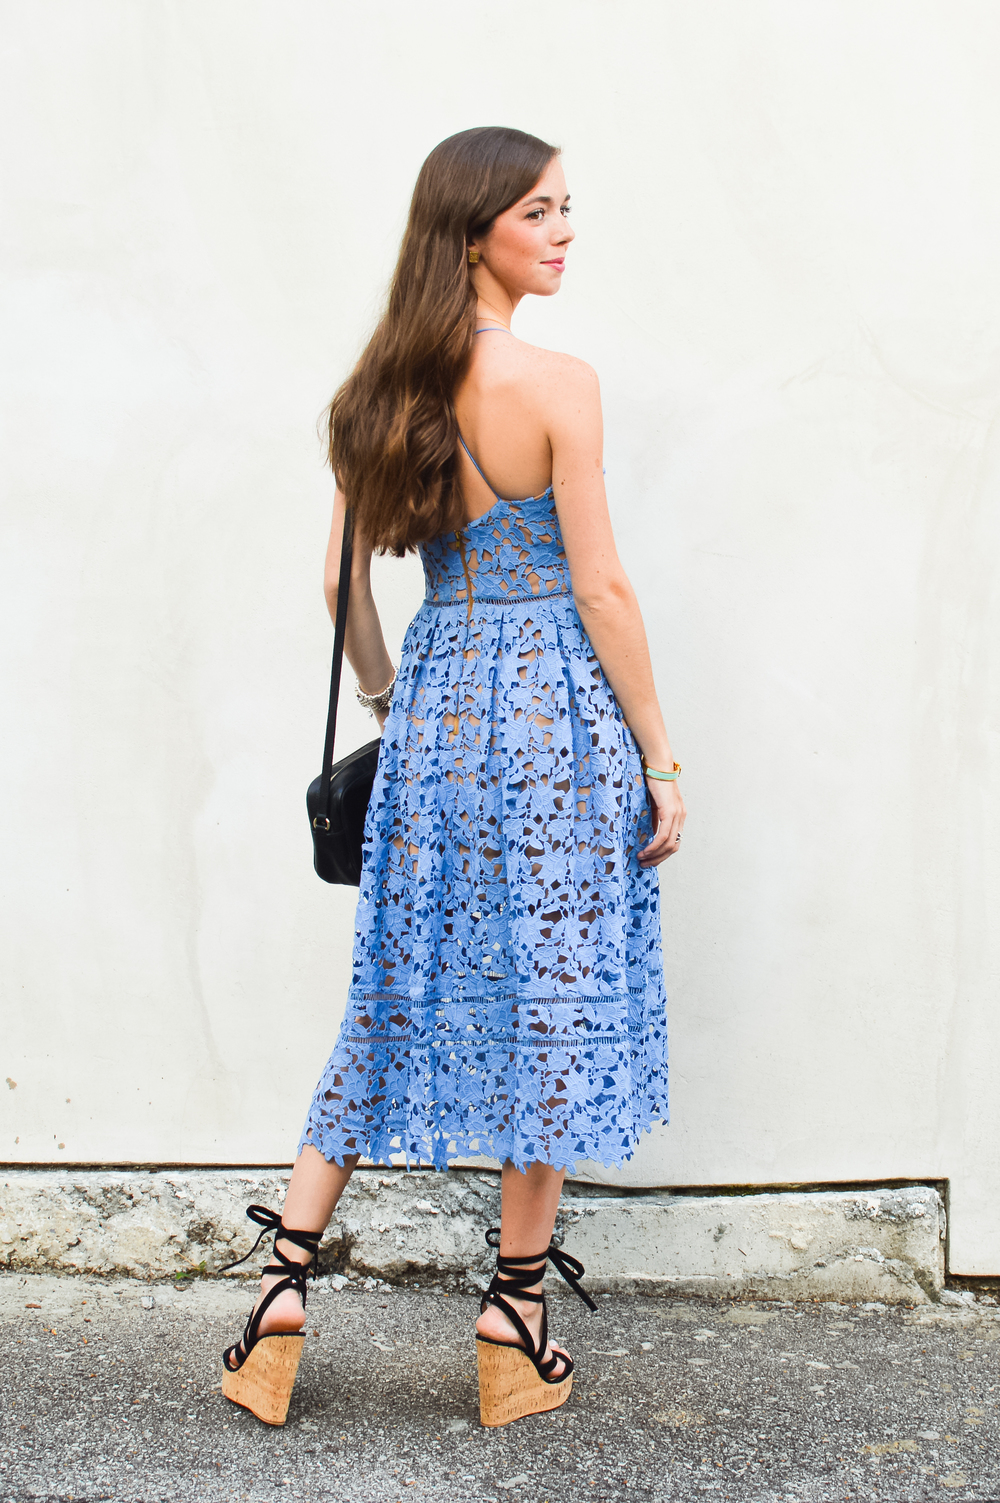 lcb_style_fashion_blogger_selfportrait_dress (22 of 48).jpg